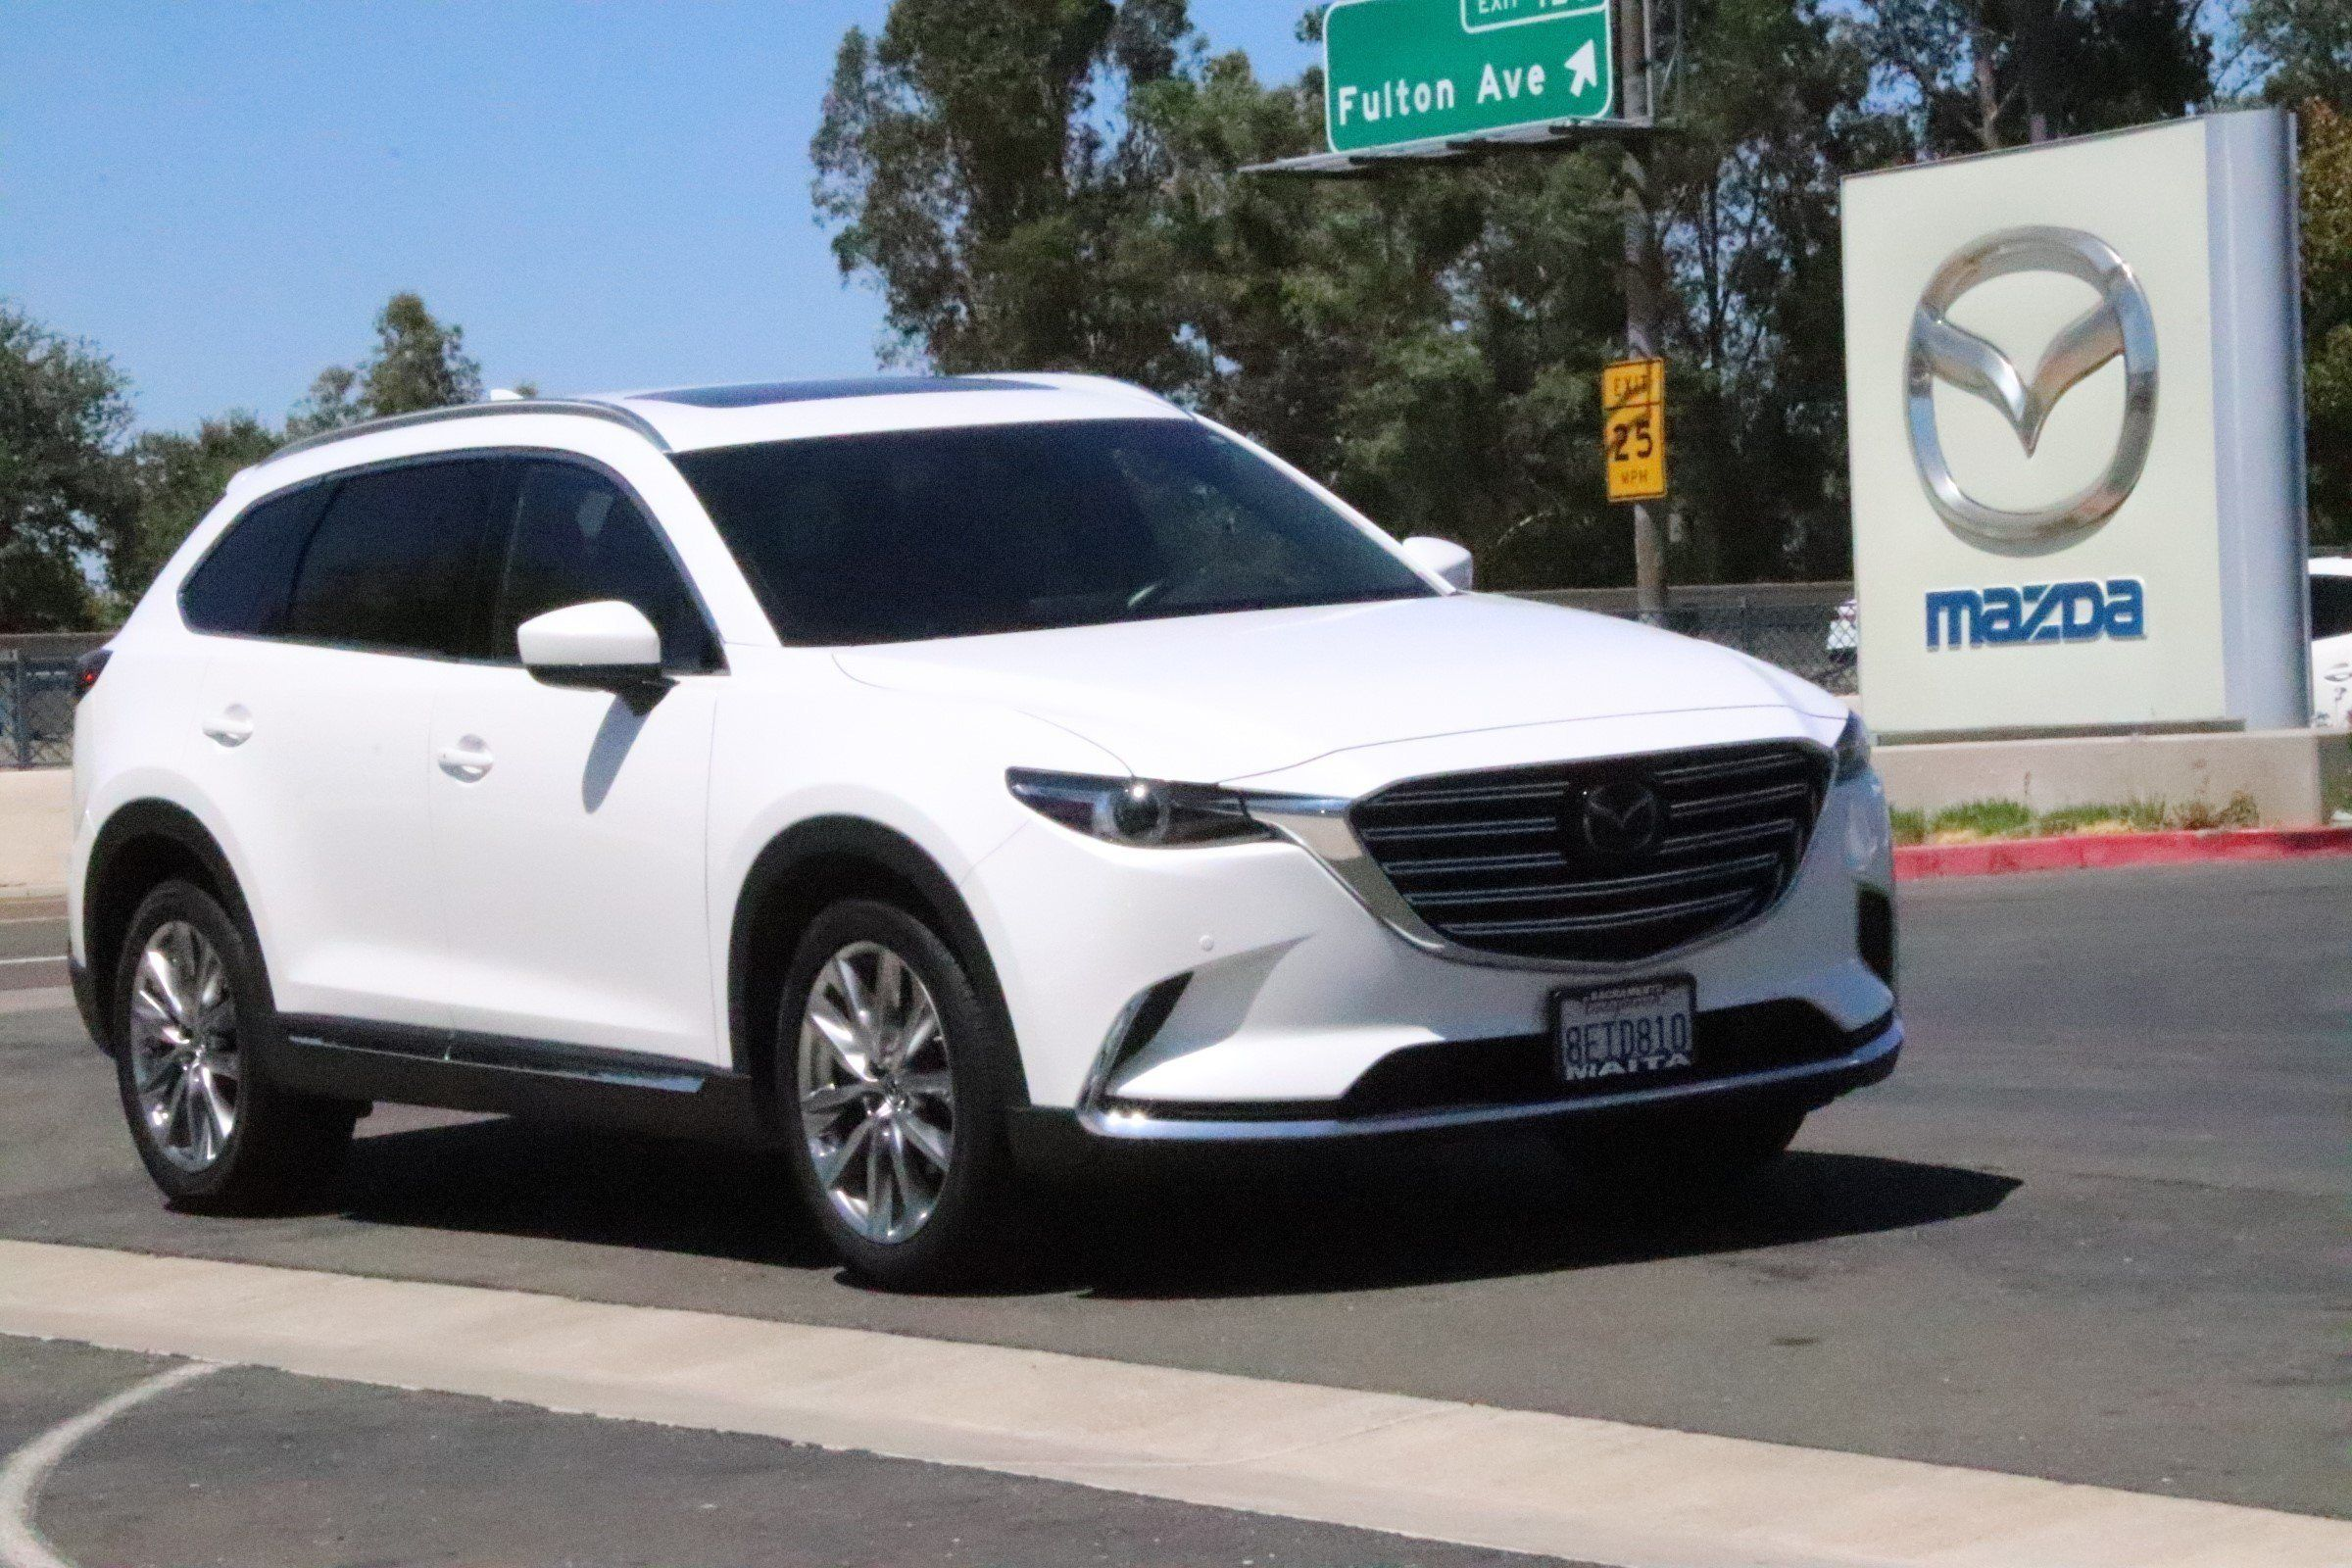 2020 Mazda Cx 5 Price And Release Date In 2020 Mazda Cx 9 Mazda Mx5 Miata Miata